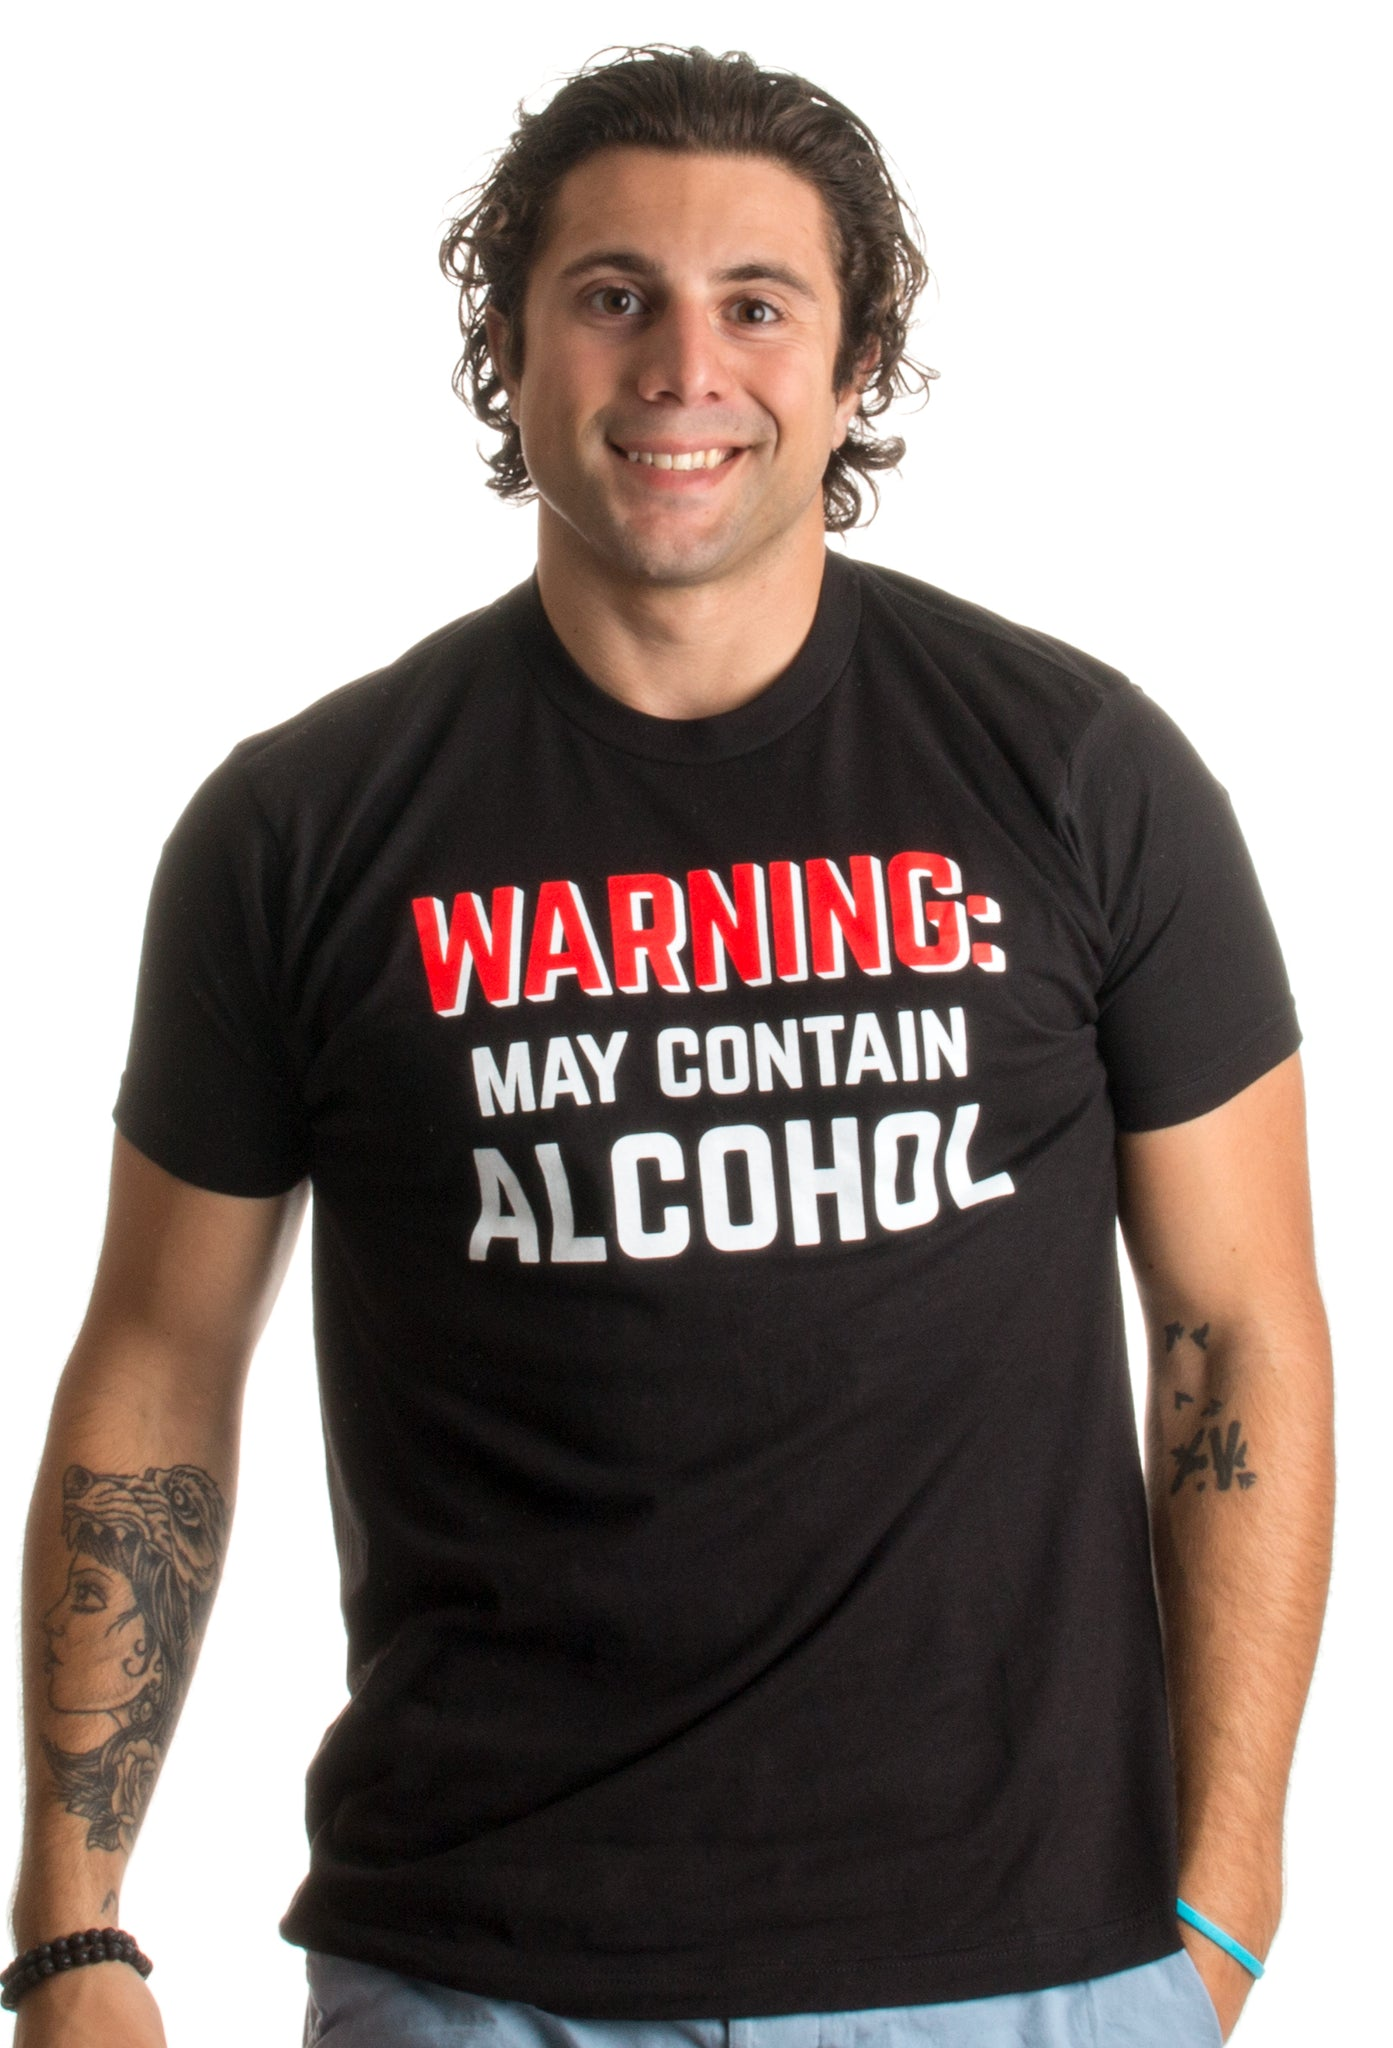 6e5380b6 WARNING: May Contain Alcohol   Funny Beer Concert Party Bar Humor Unisex T- shirt ...